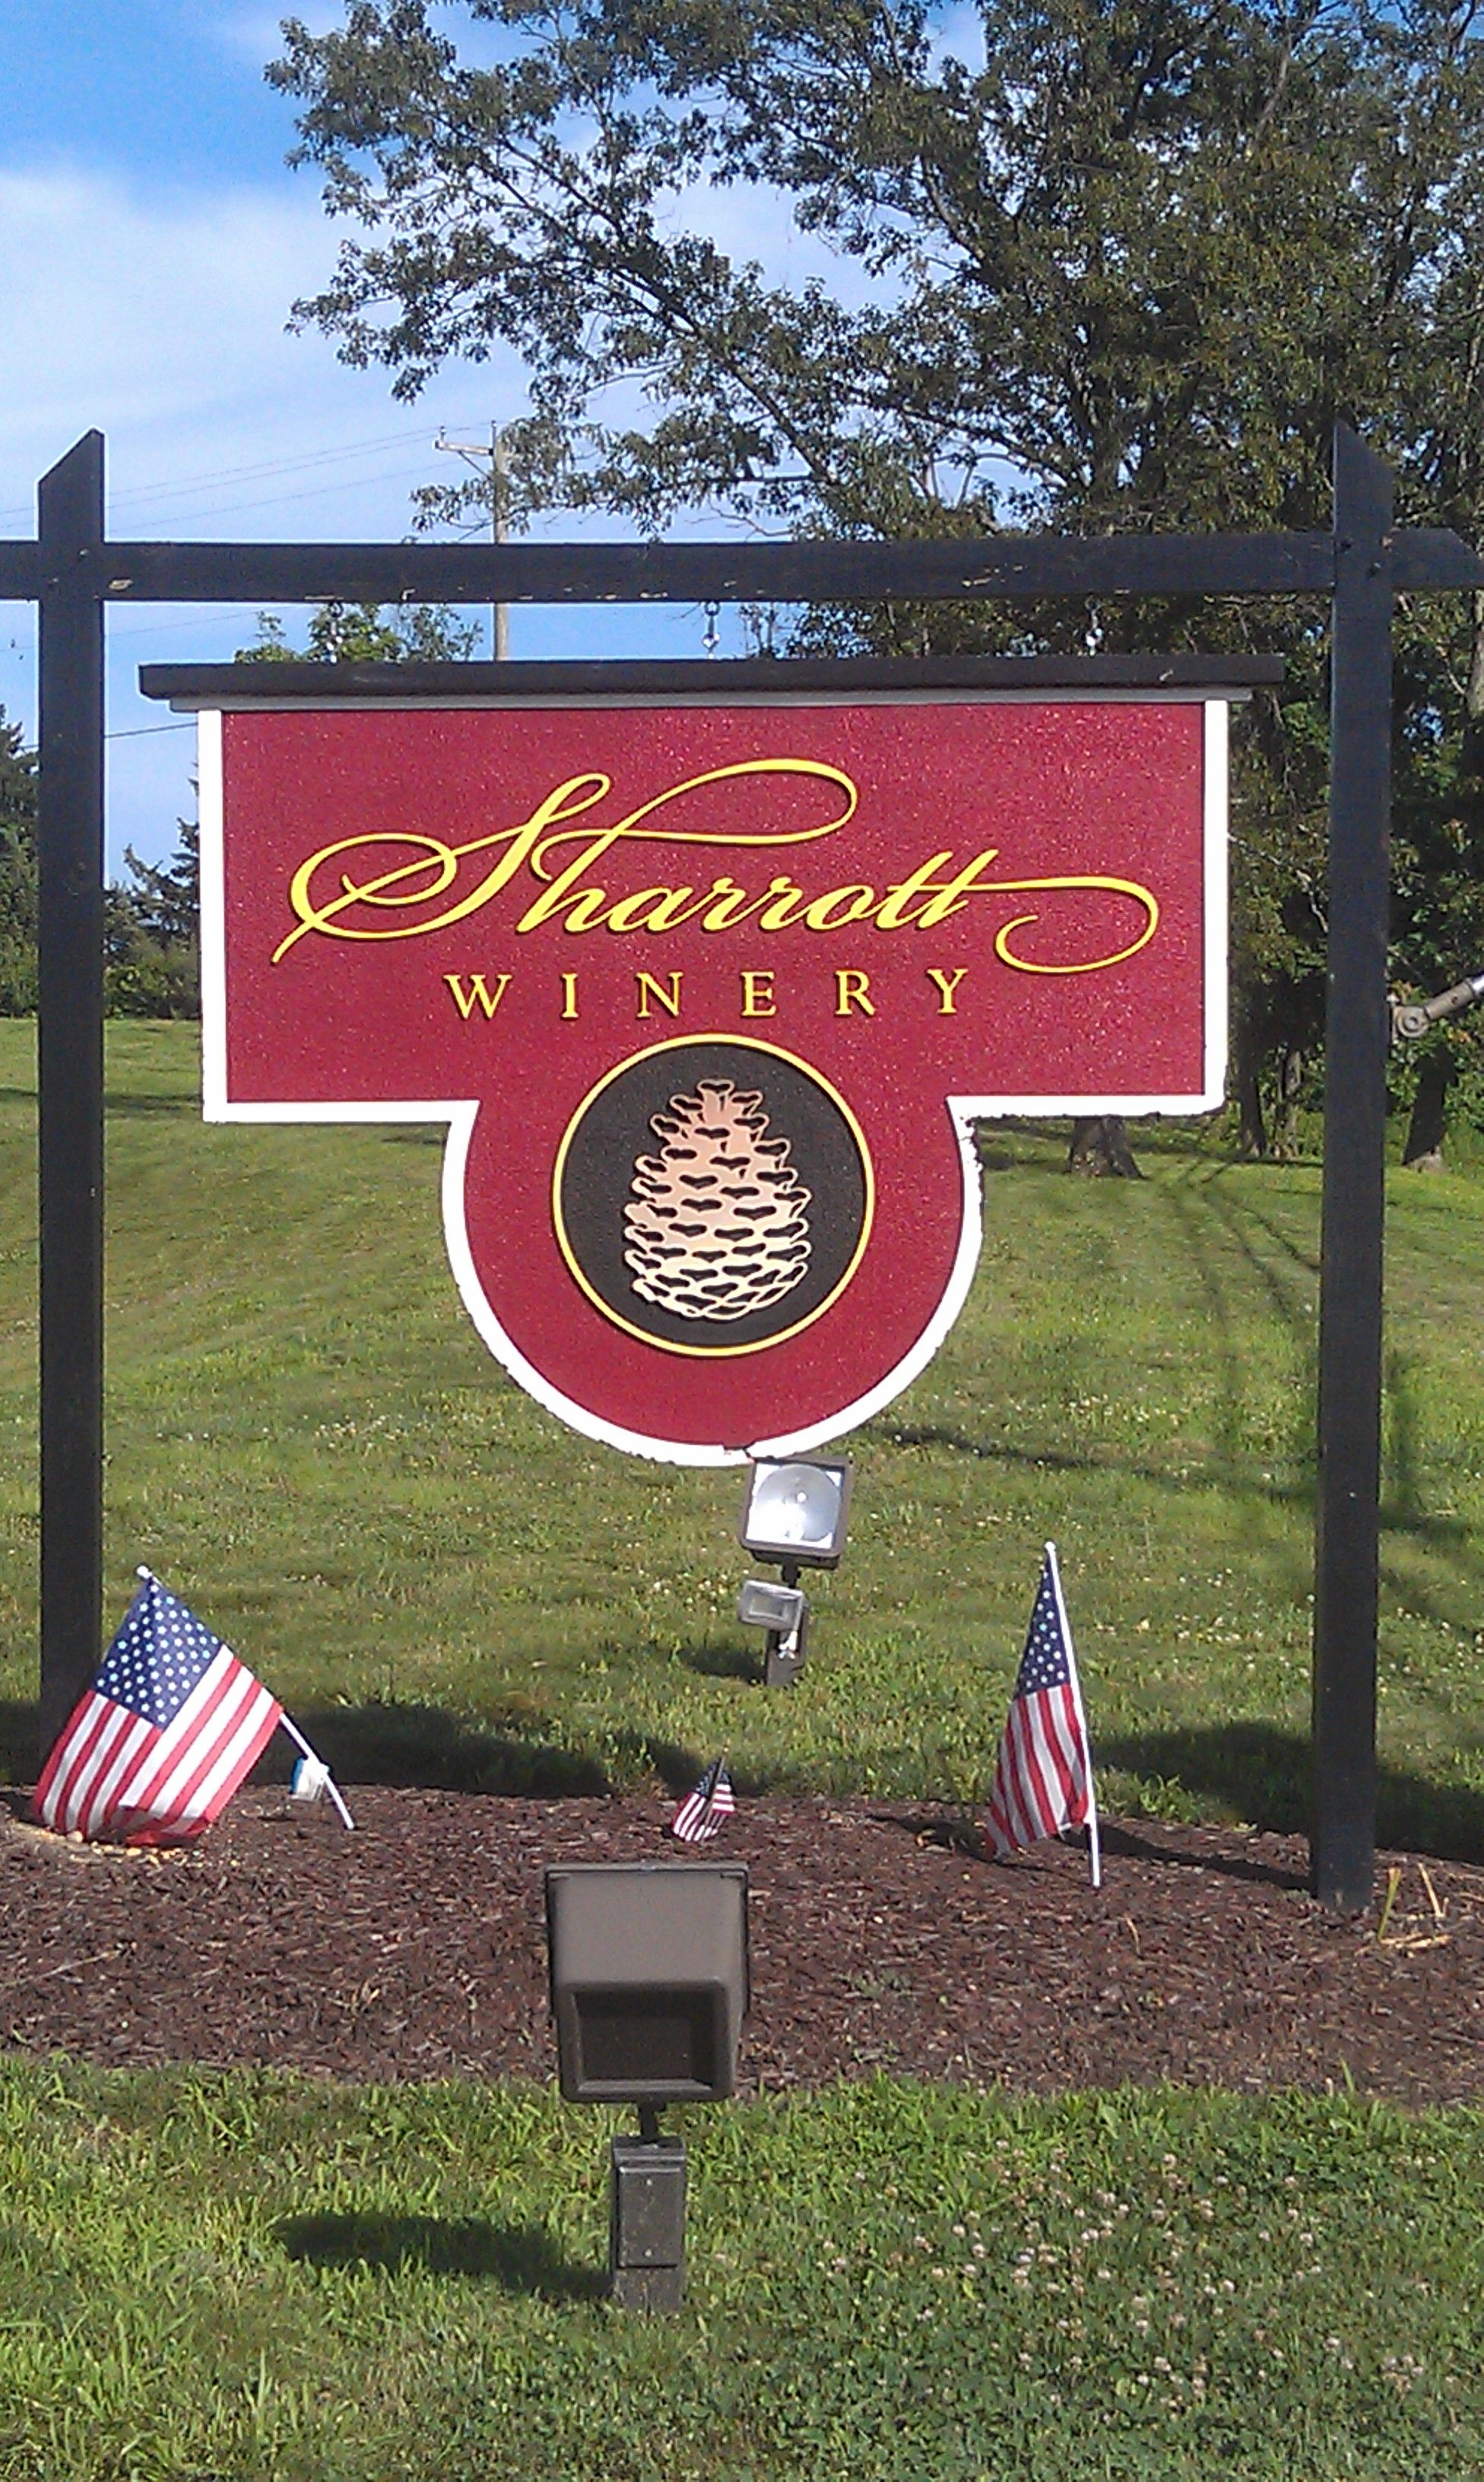 Sharrott Winery In New Jersey Sharrott Winery New Jersey Wine Tour